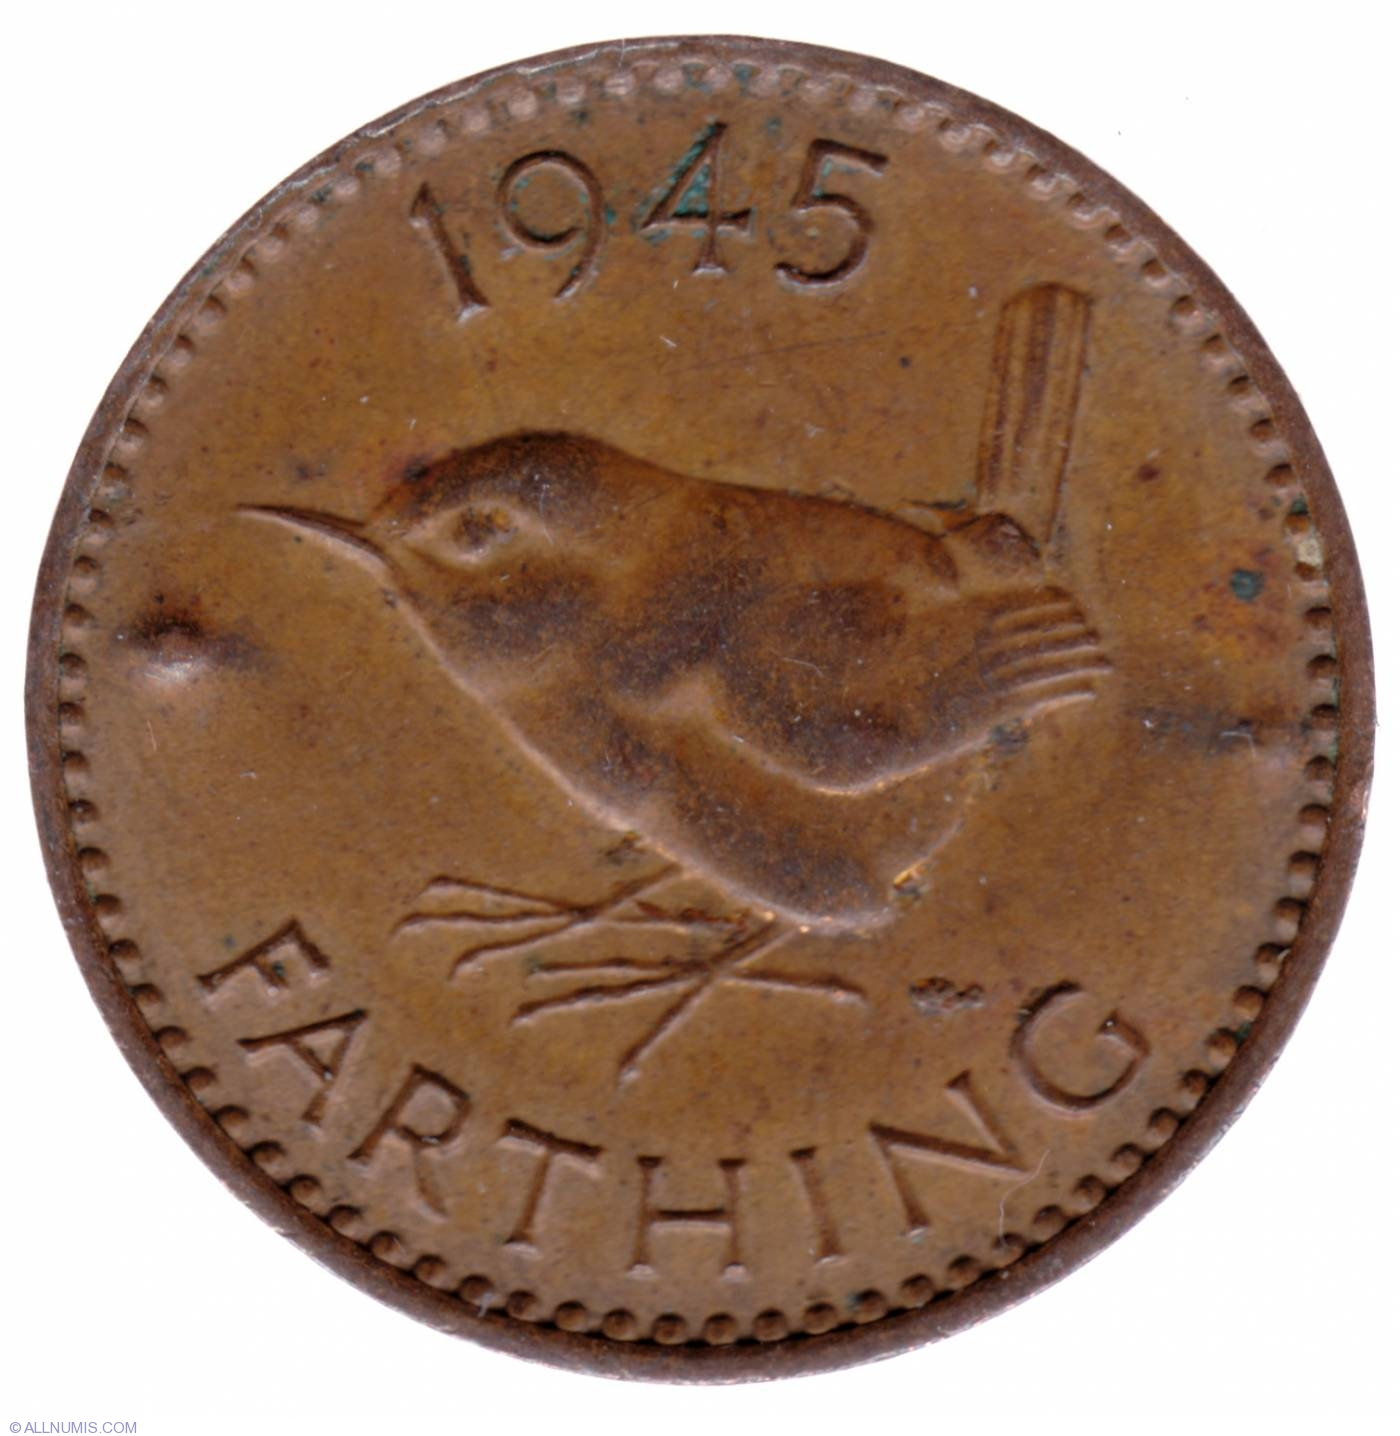 Coin of 1 Farthing 1945 from Great Britain - ID 15873